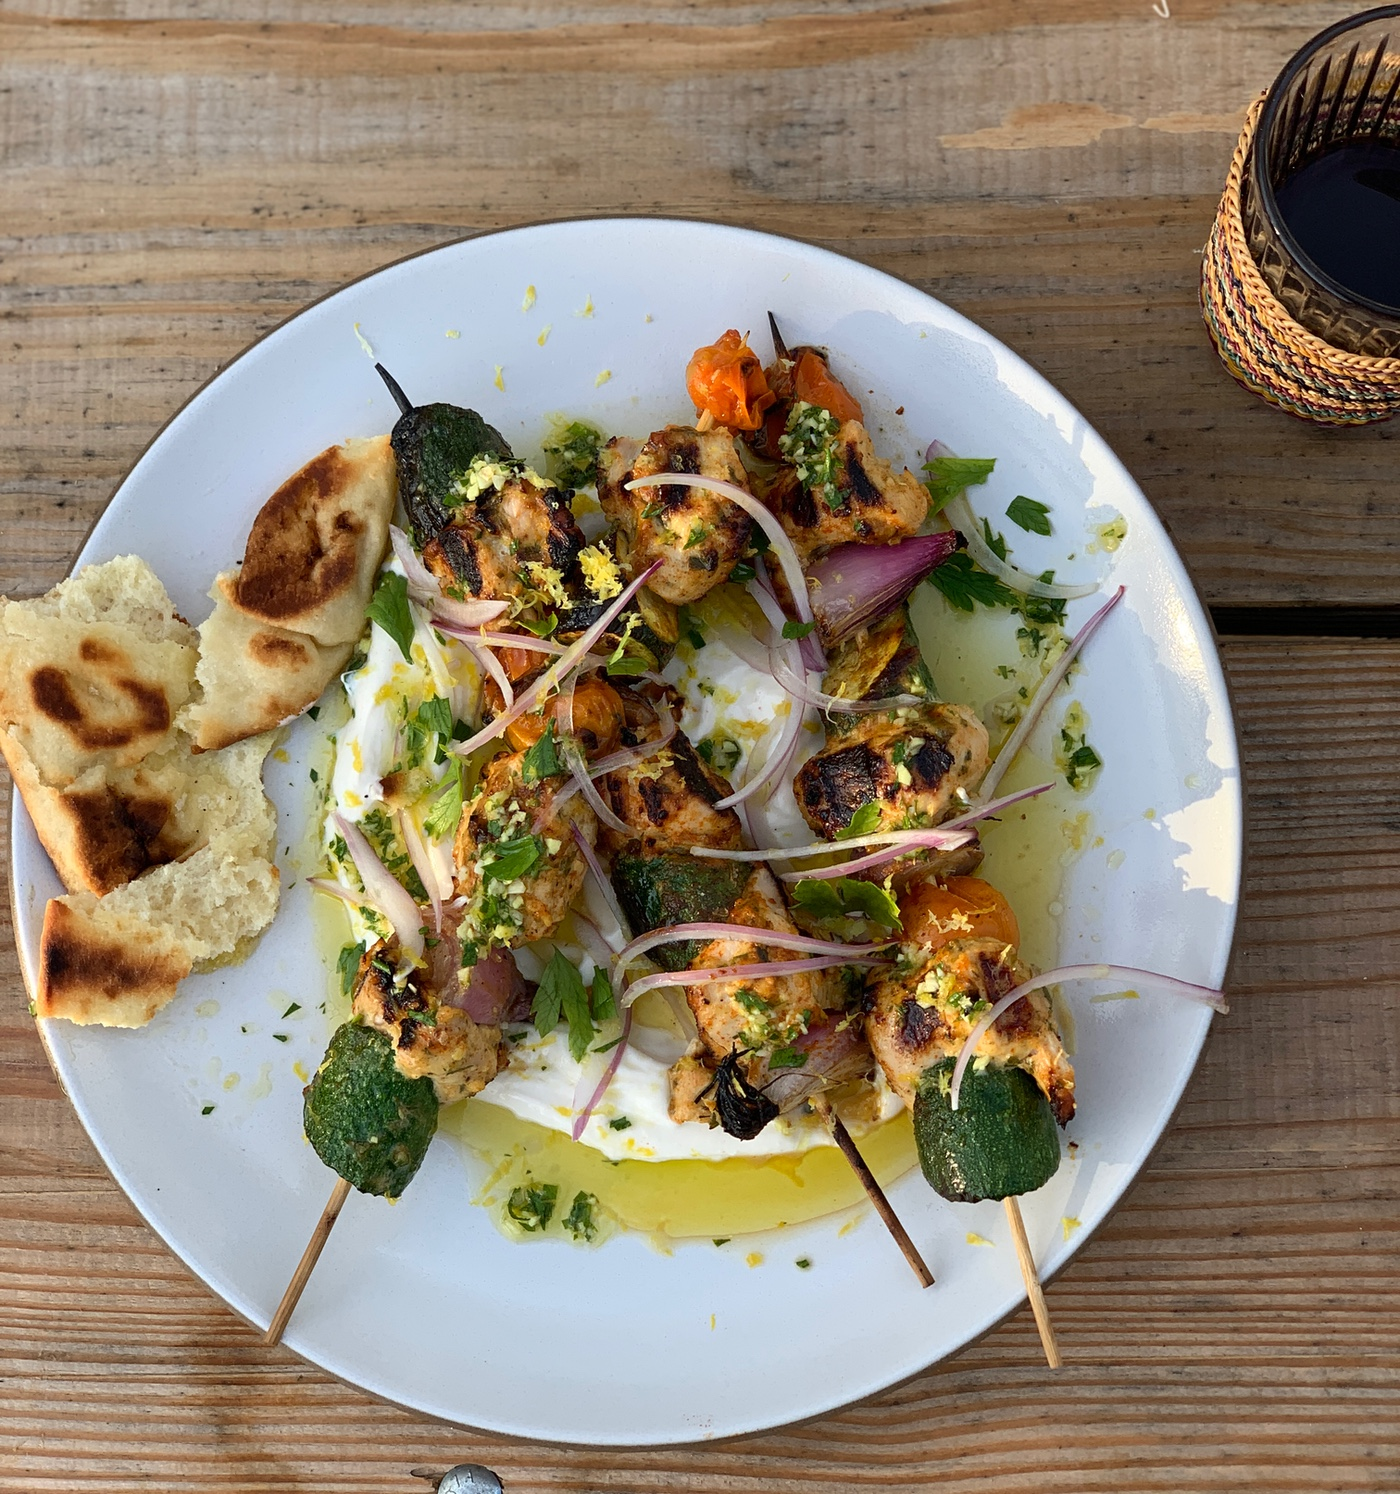 Yogurt Marinated Chicken Skewers with Herbed Dressing